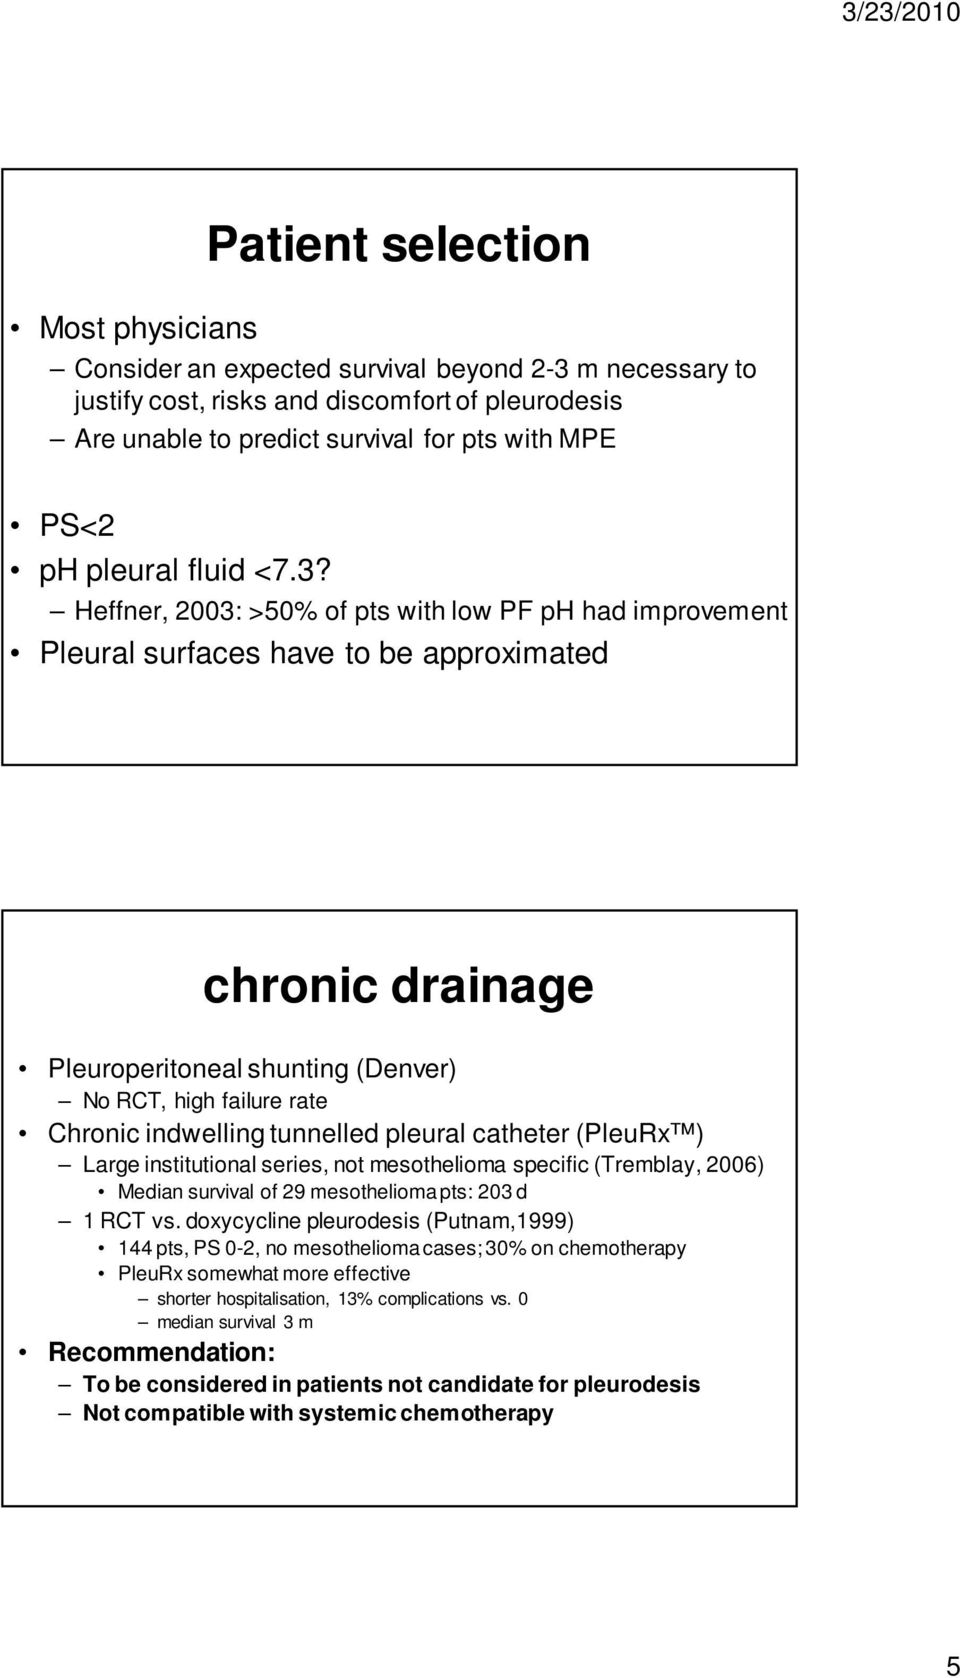 Heffner, 2003: >50% of pts with low PF ph had improvement Pleural surfaces have to be approximated chronic drainage Pleuroperitoneal shunting (Denver) No RCT, high failure rate Chronic indwelling